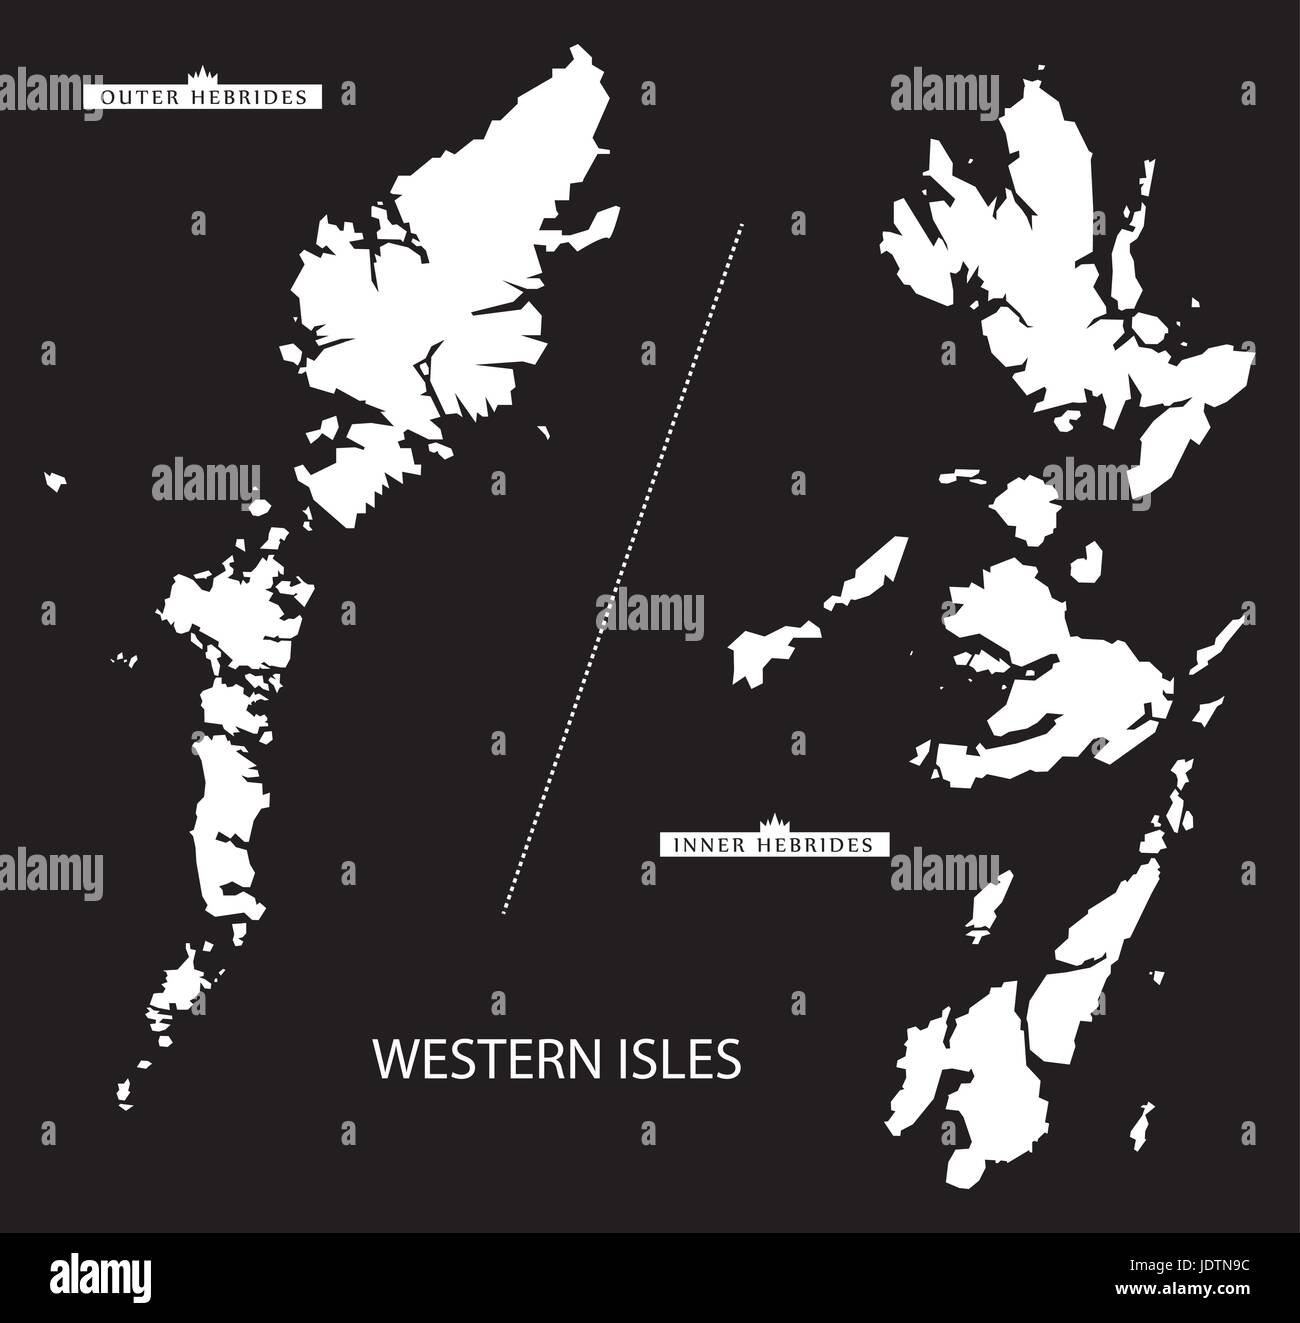 Western Isles of Scotland map black inverted silhouette illustration - Stock Vector